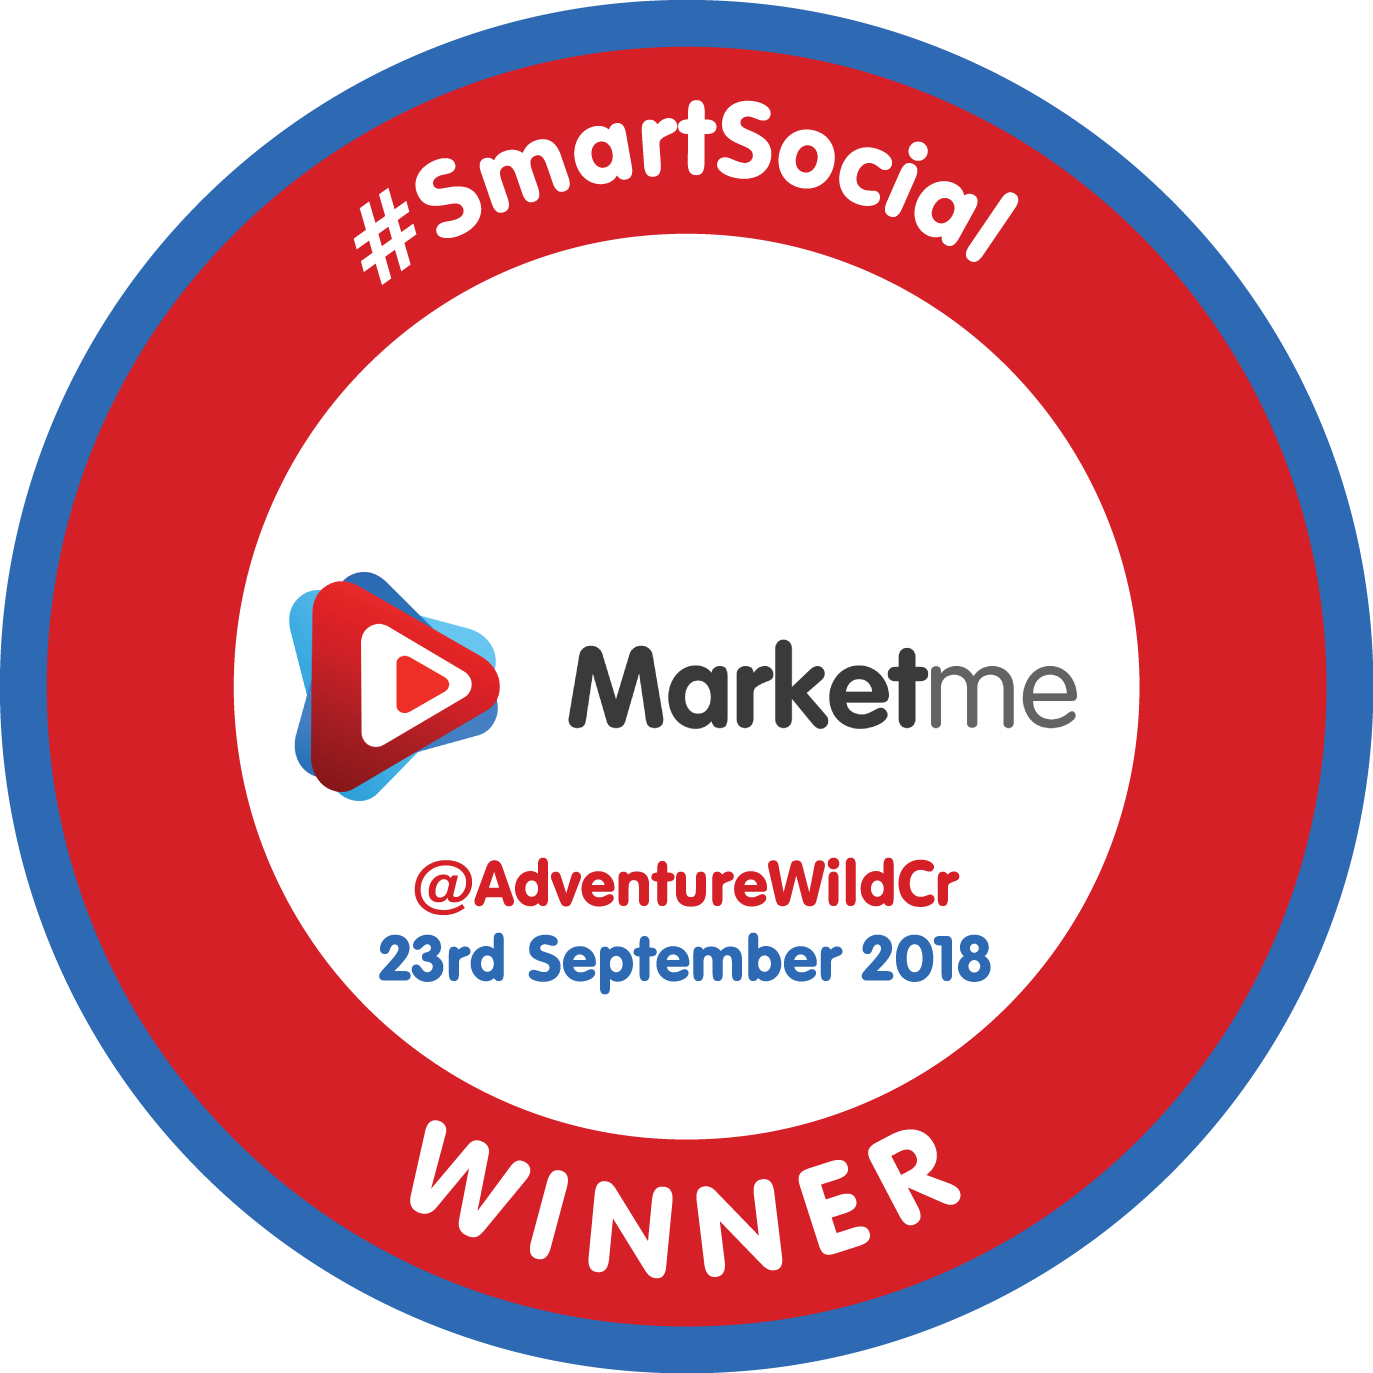 SmartSocial Badge - Circle